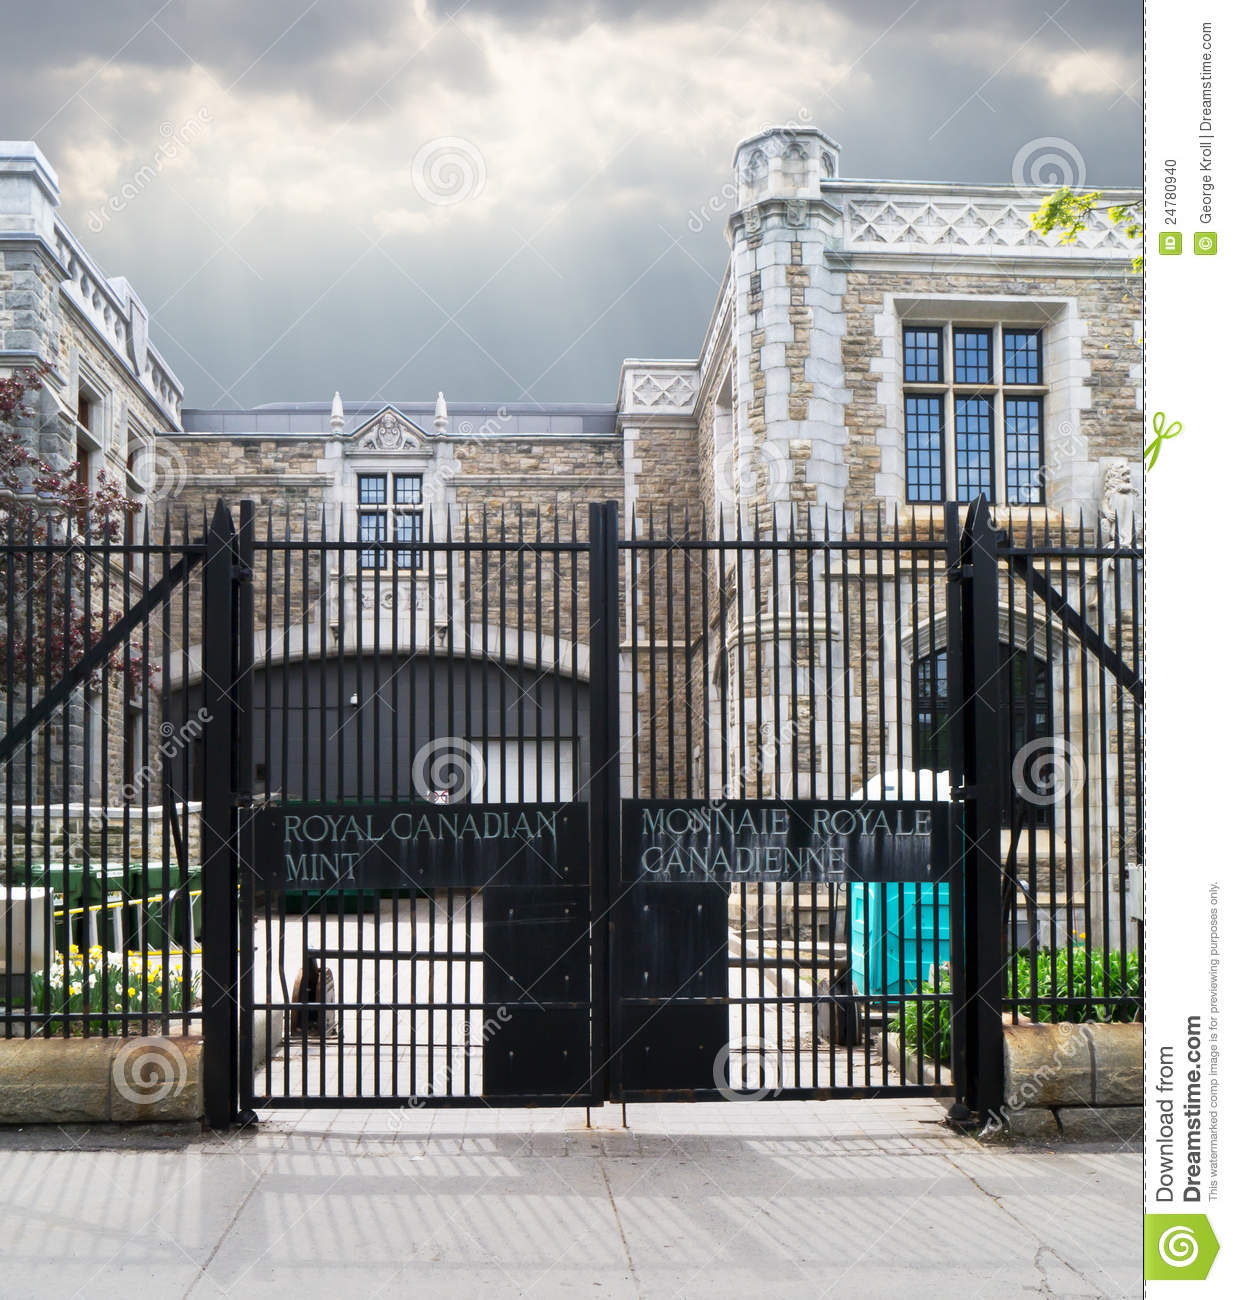 Entrance gate to the Royal Canadian Mint